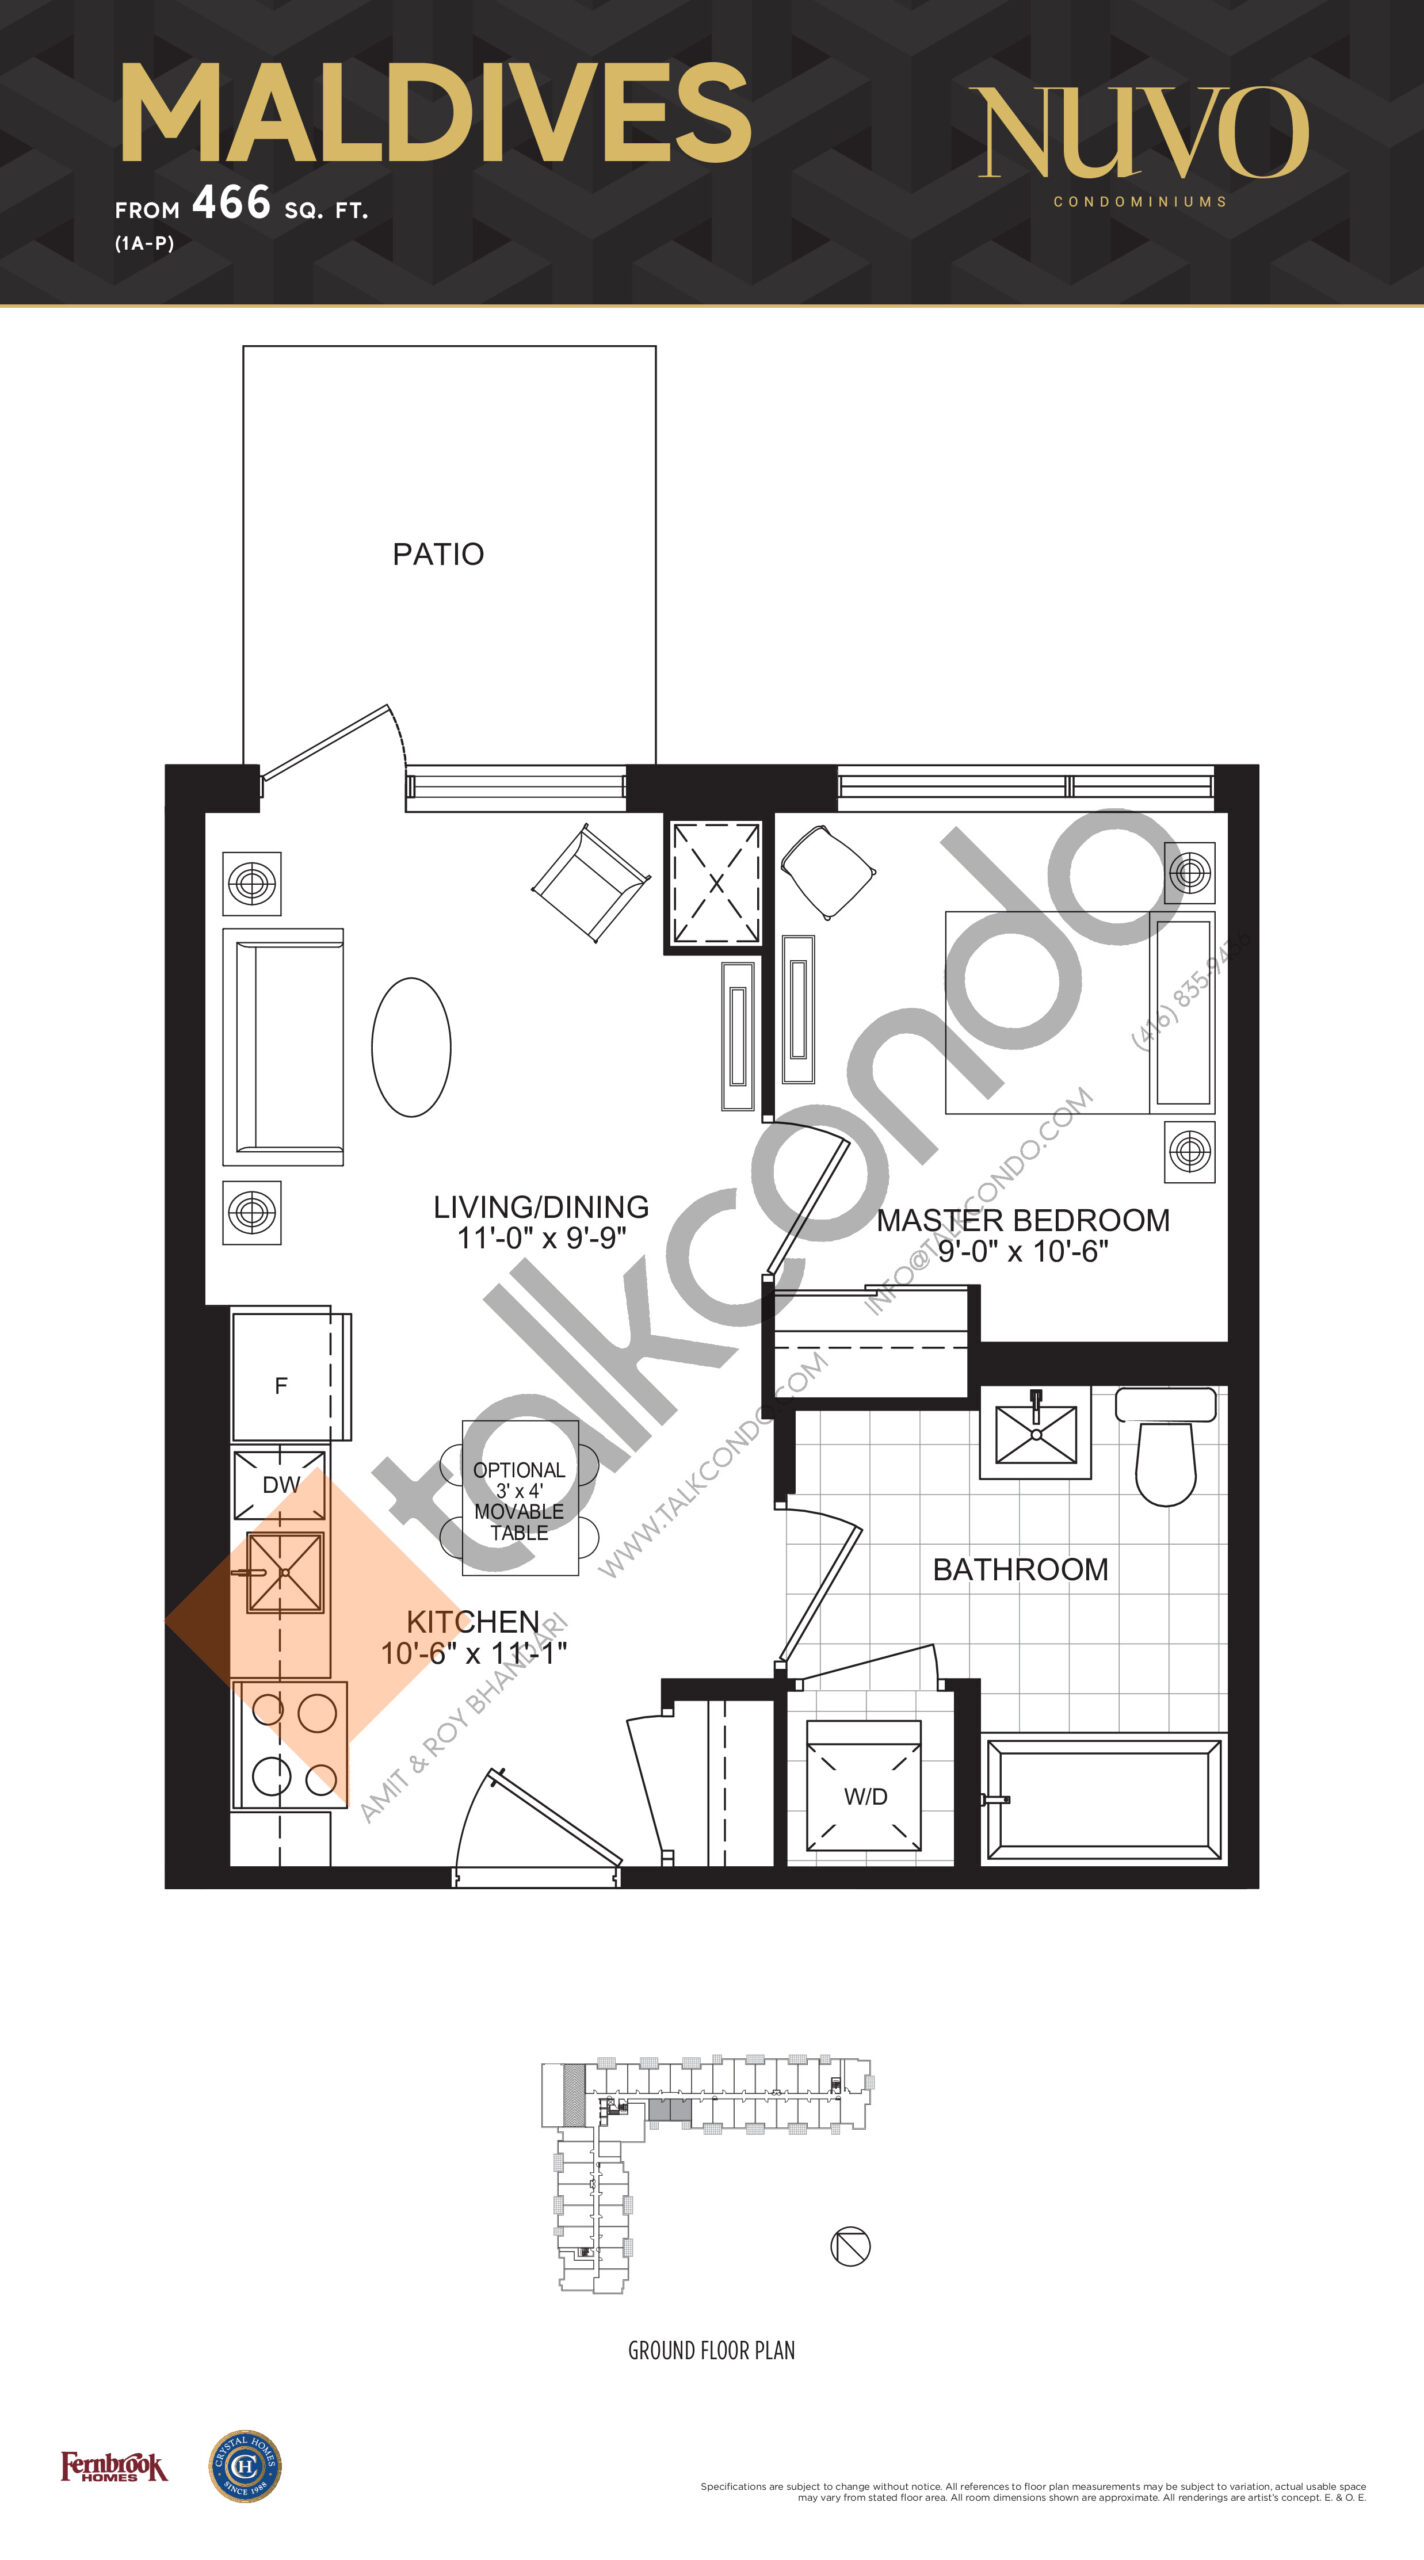 Maldives Floor Plan at Nuvo Condos - 466 sq.ft